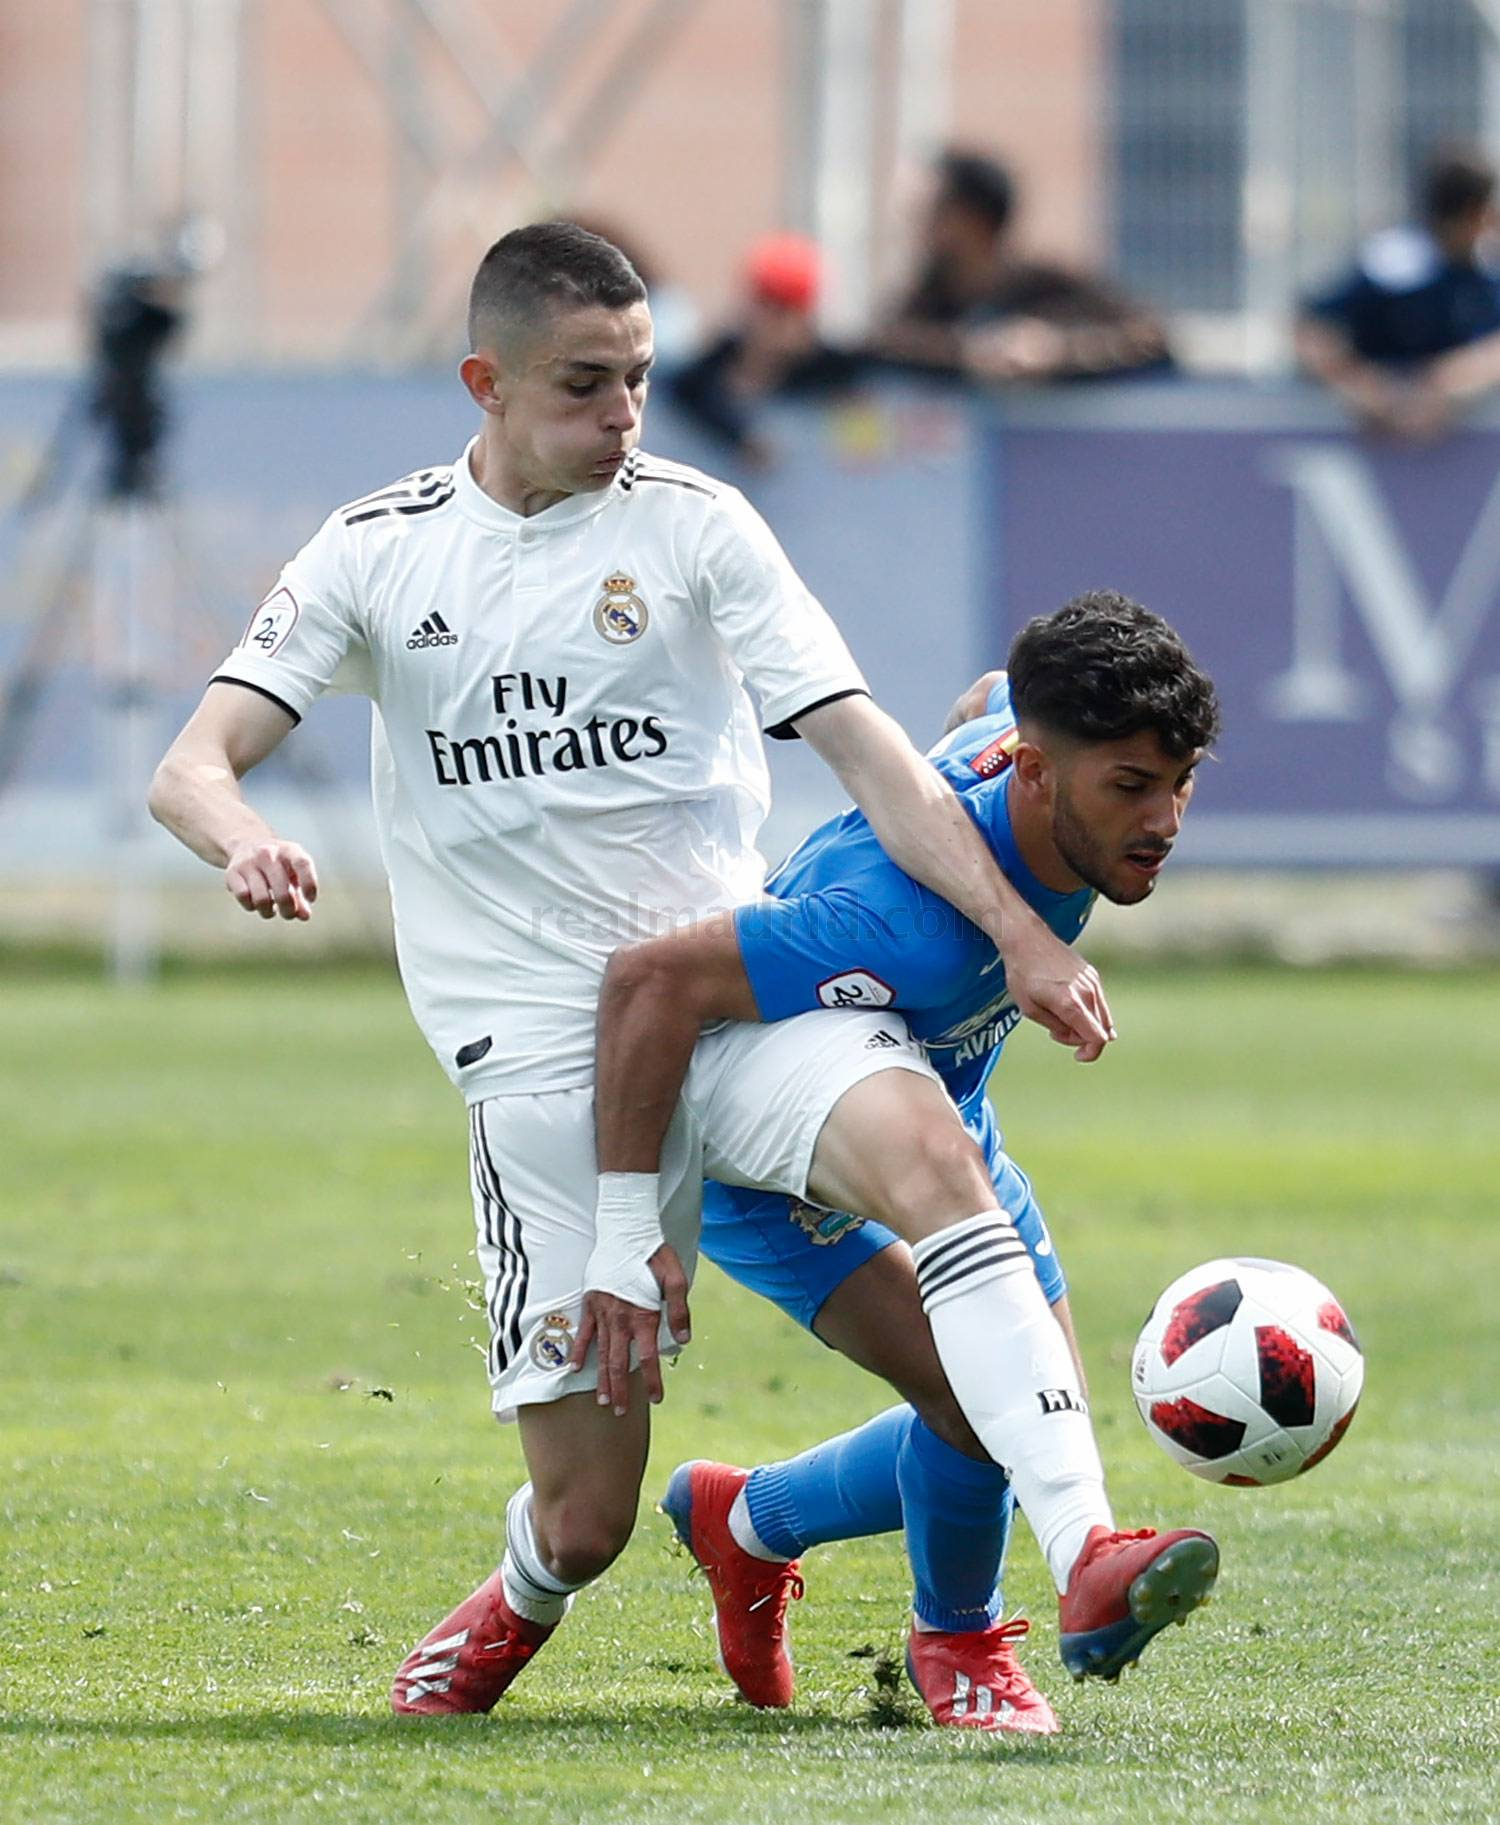 Real Madrid - Fuenlabrada - Real Madrid Castilla - 17-03-2019